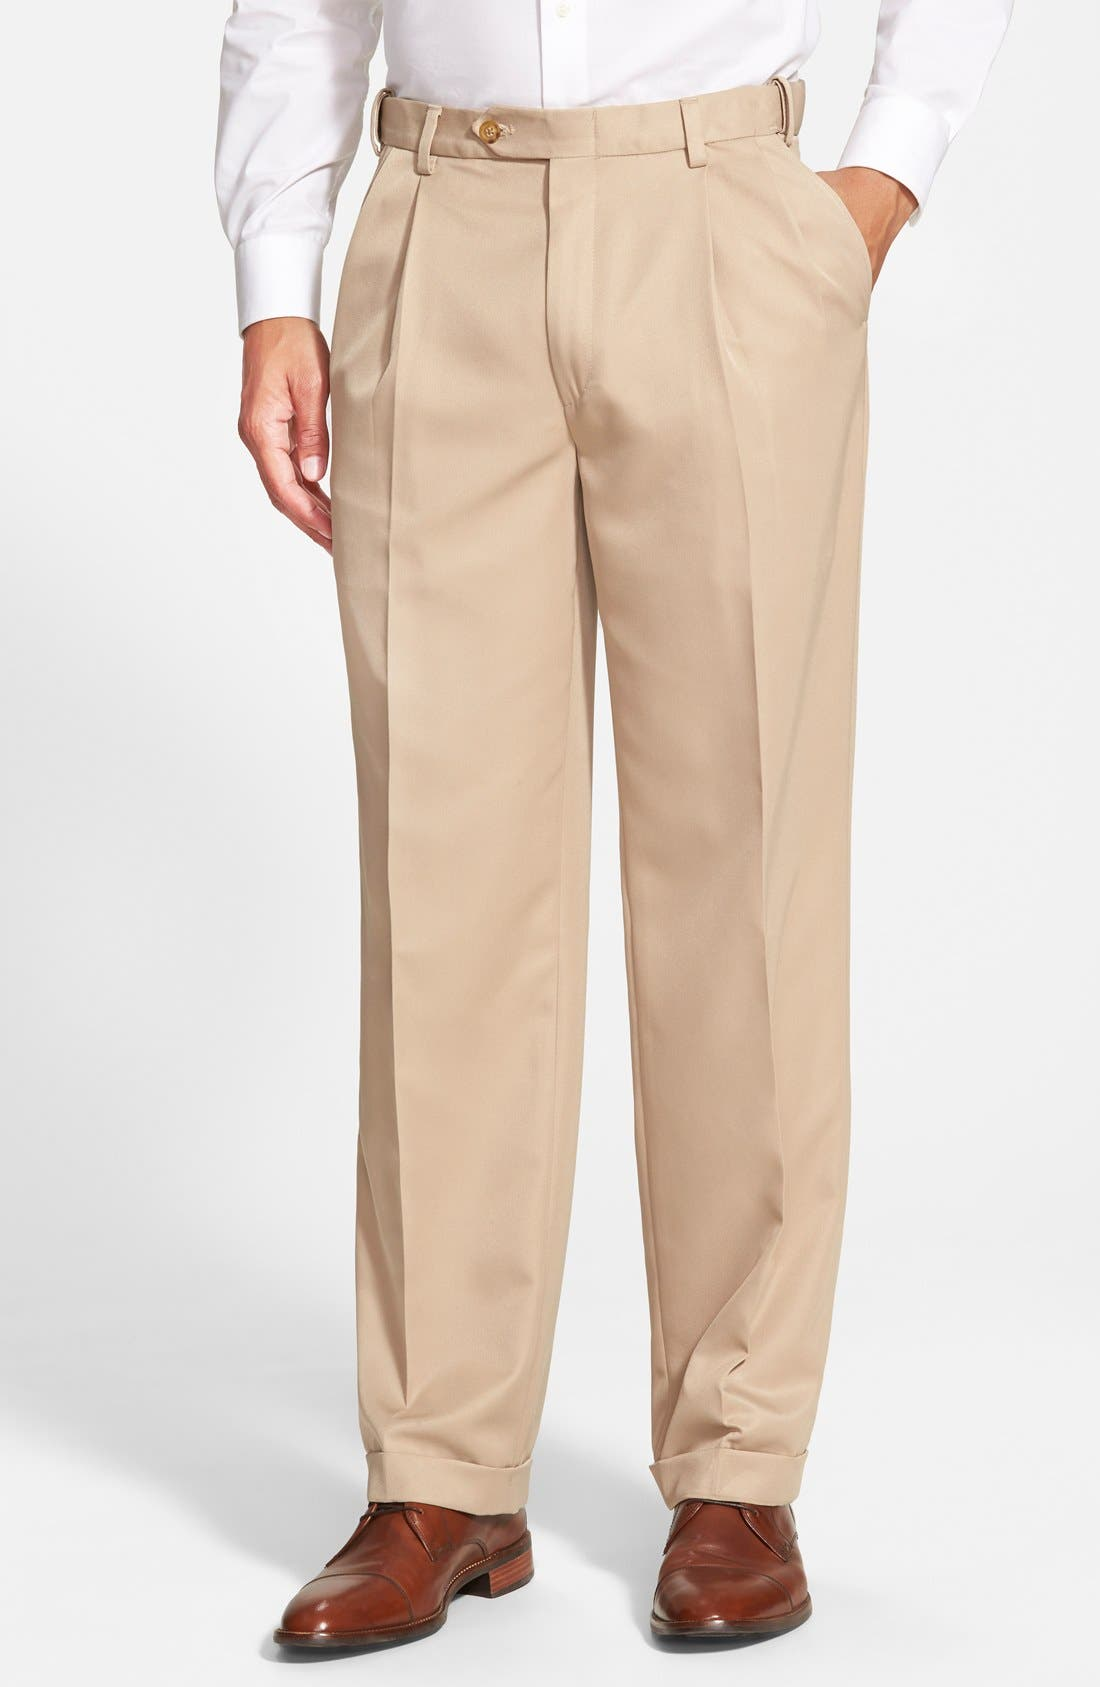 Self Sizer Waist Pleated Trousers,                         Main,                         color, Tan